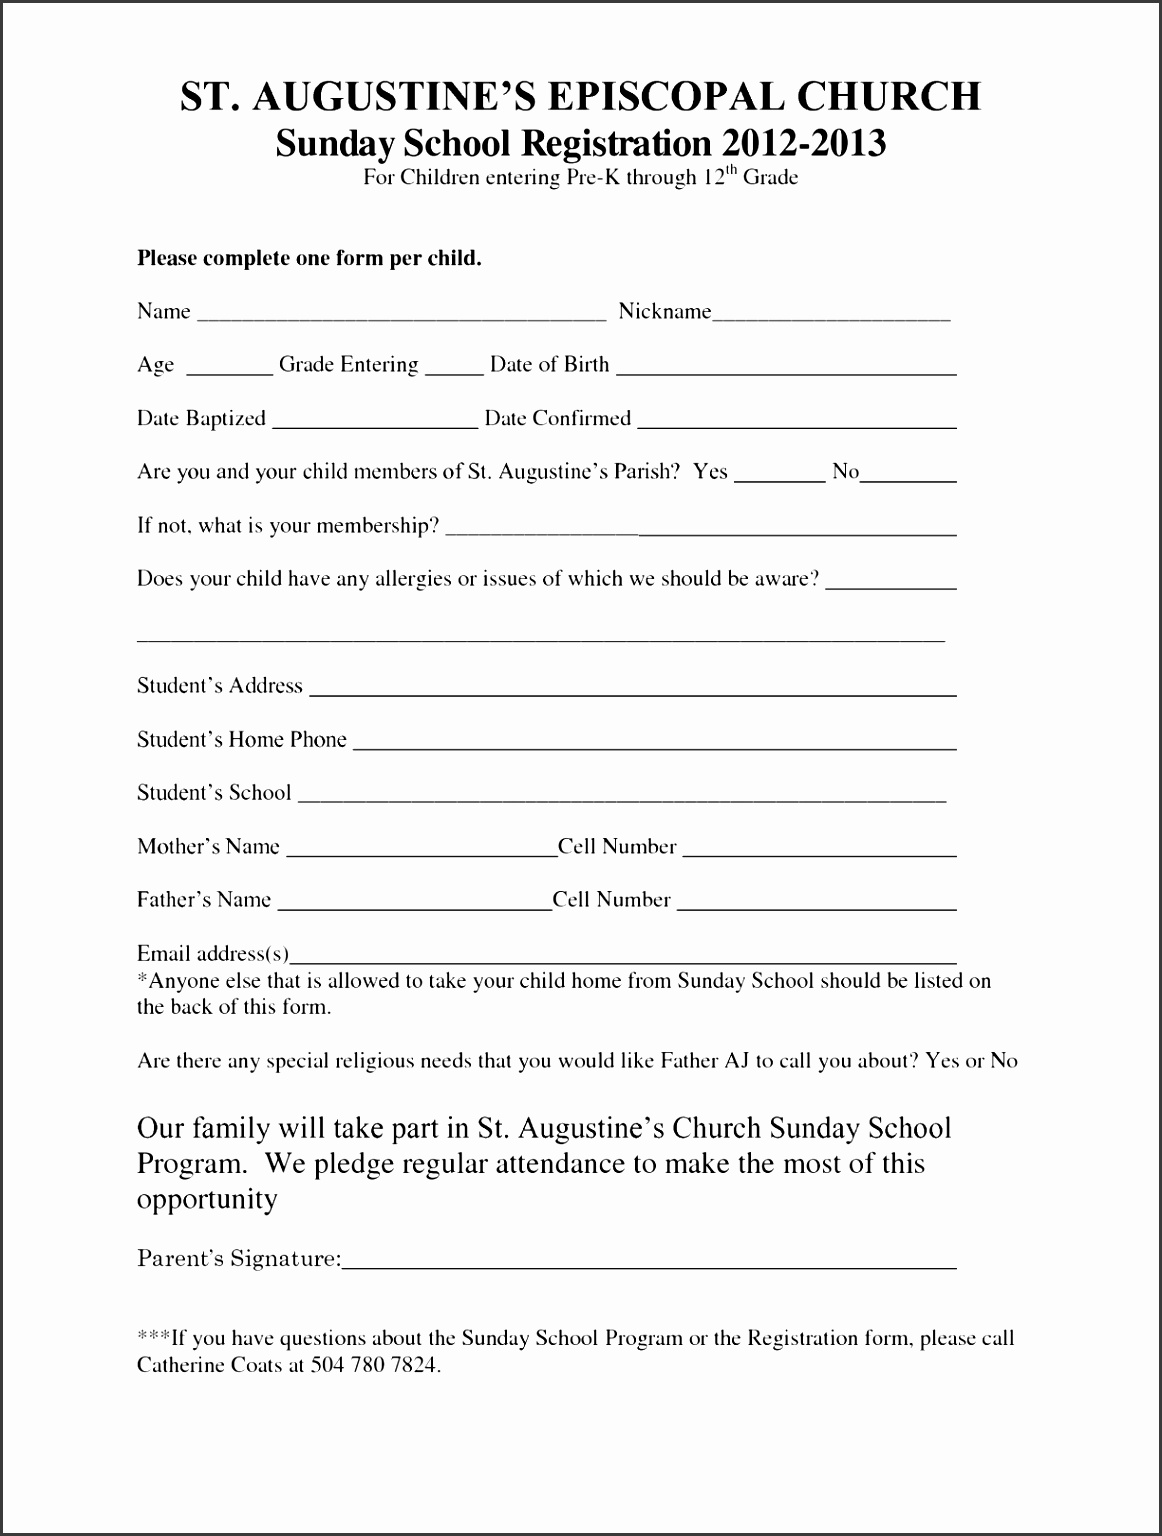 Sunday School Registration form Template to Pin Printable Sunday School Registration form Template Inspirational Doc Xls